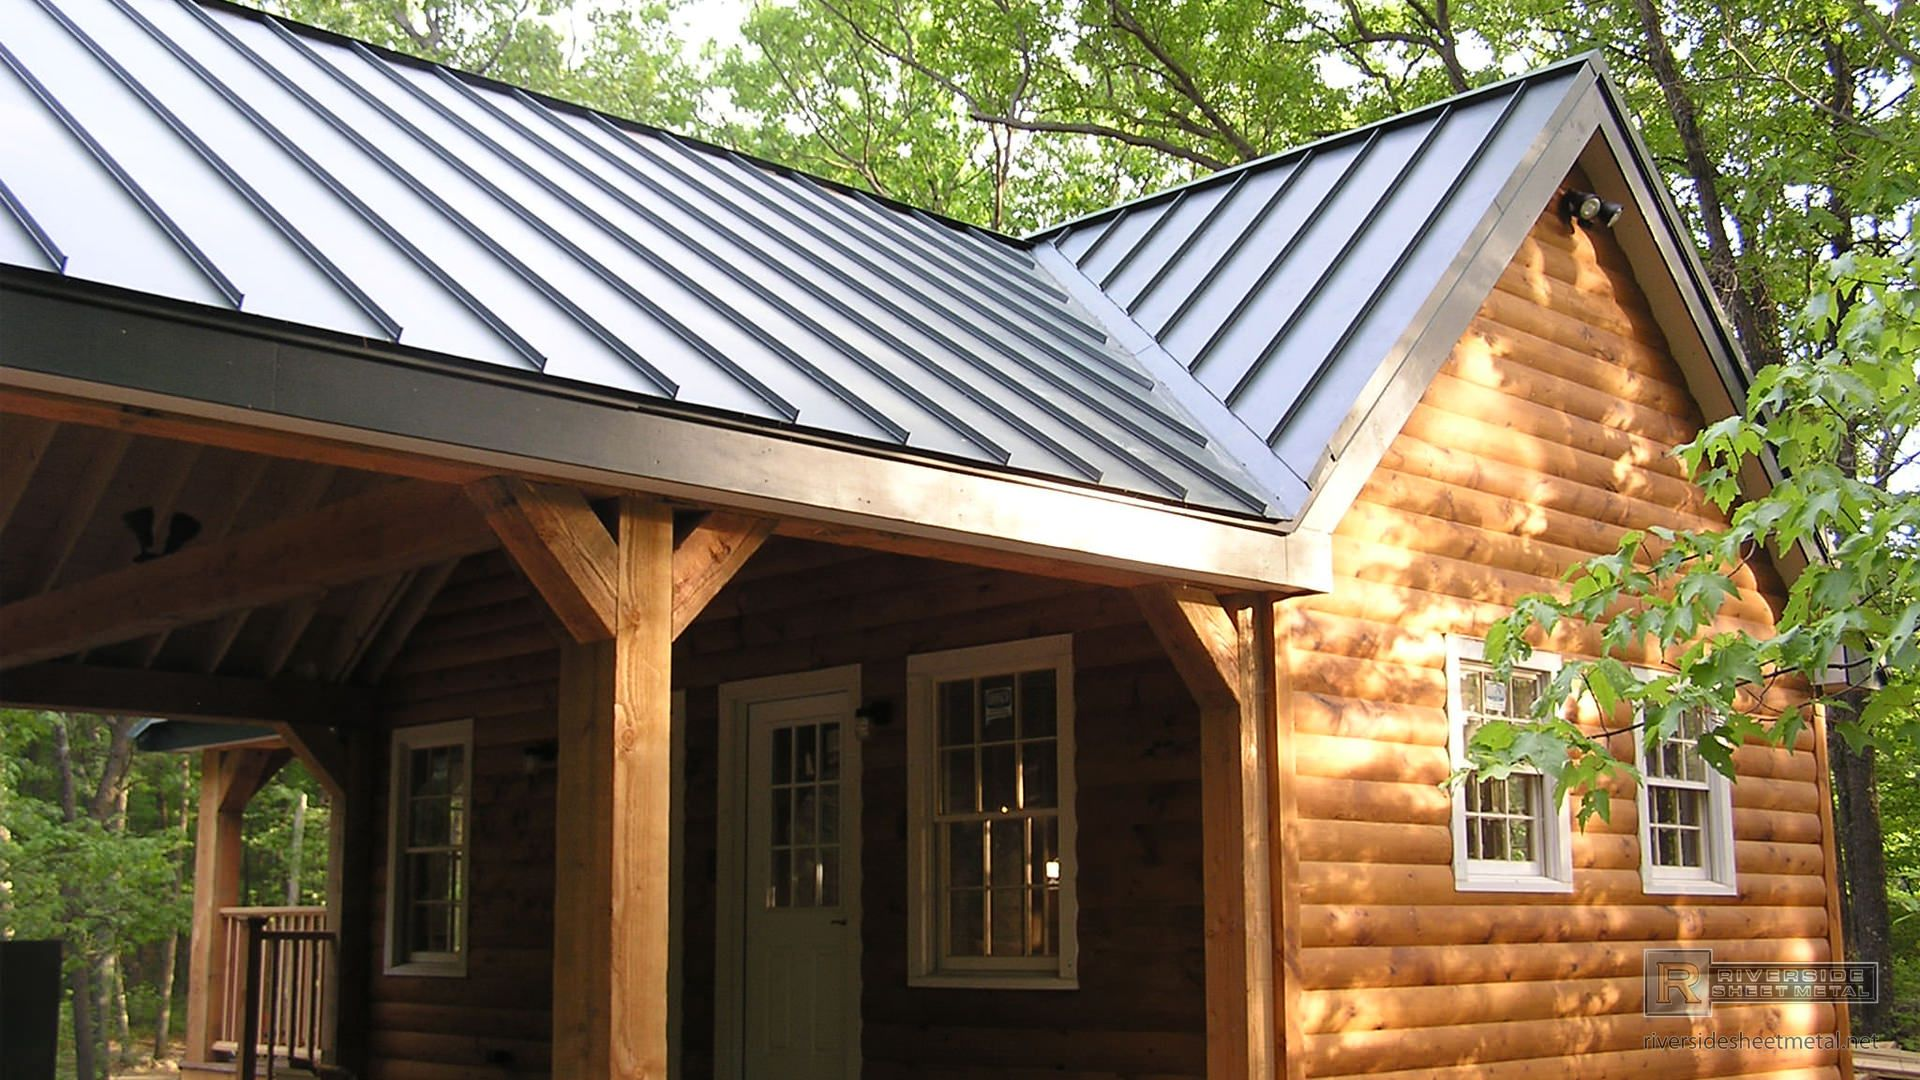 Metal Roofing Fabrication Installation Ma Nh Ri Me Vt Tin Roof House Standing Seam Metal Roof Sheet Metal Roofing